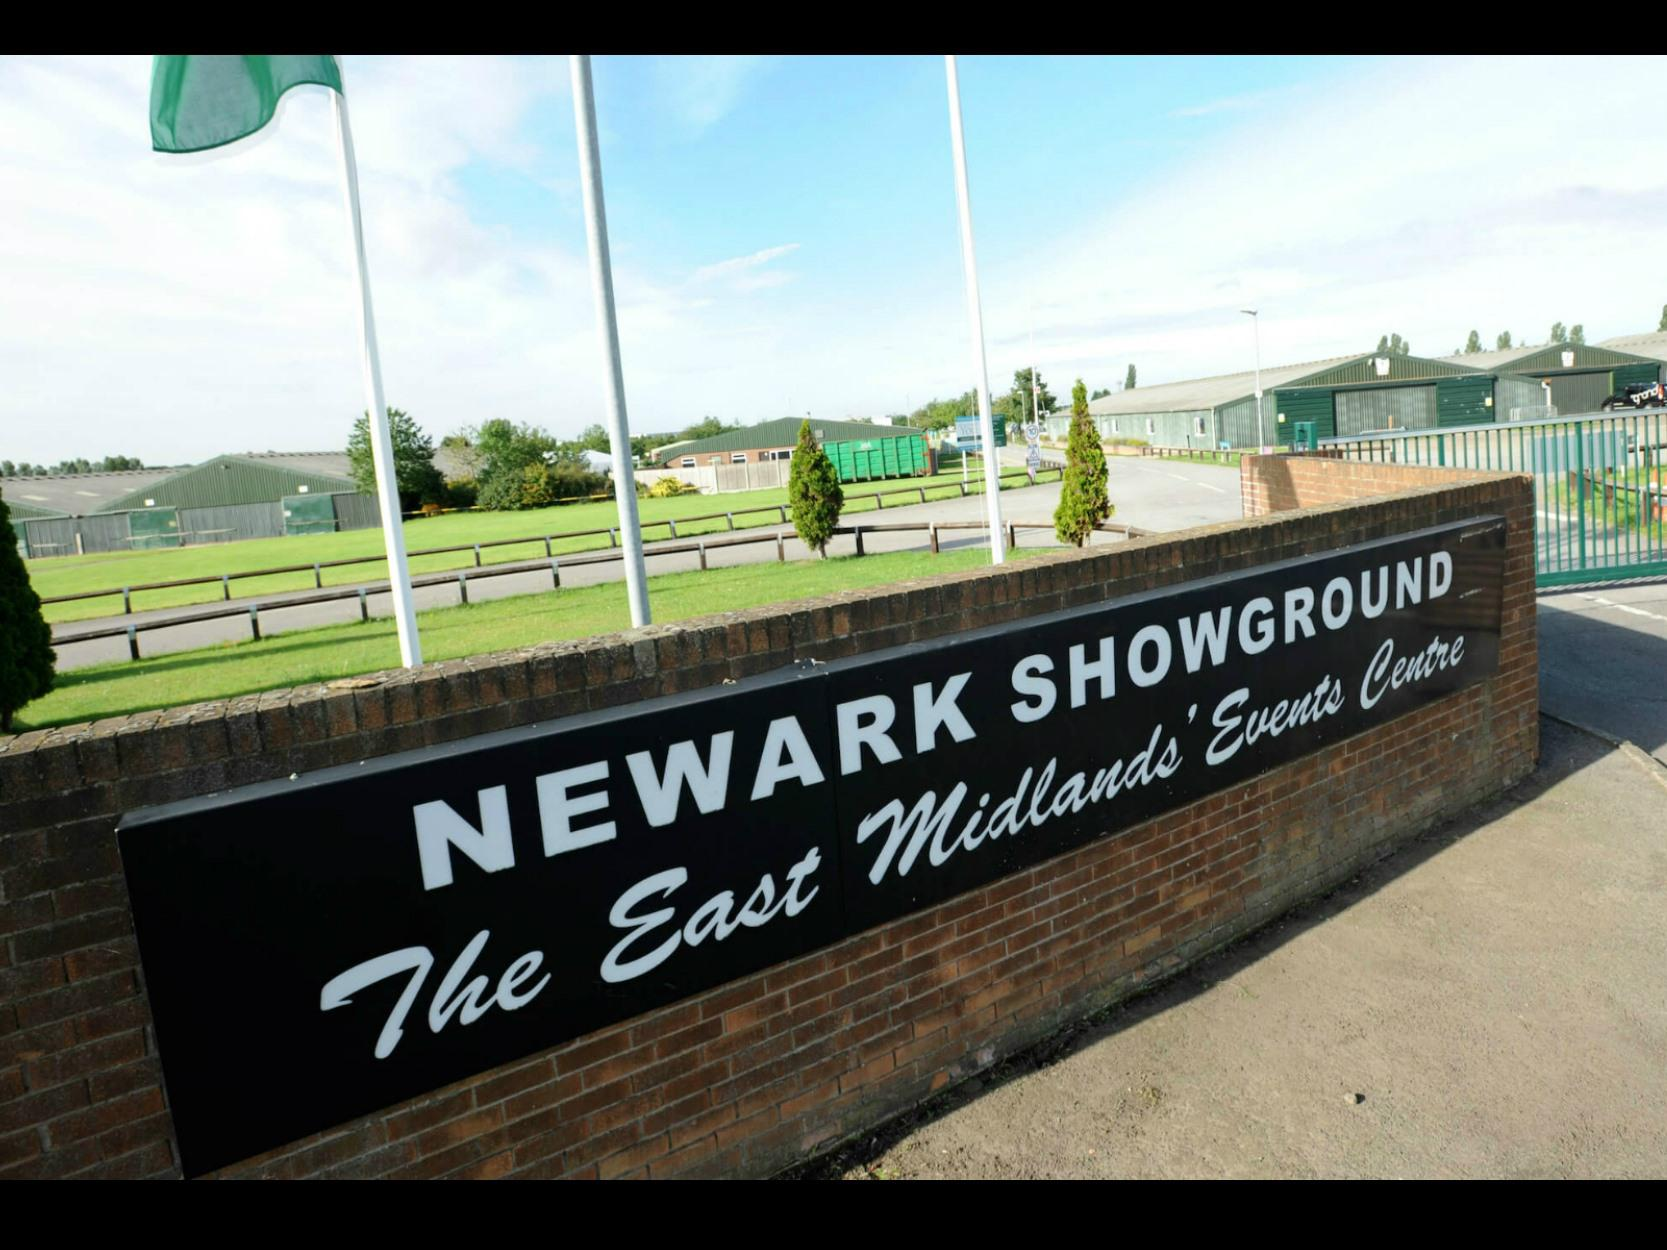 Newark Showground